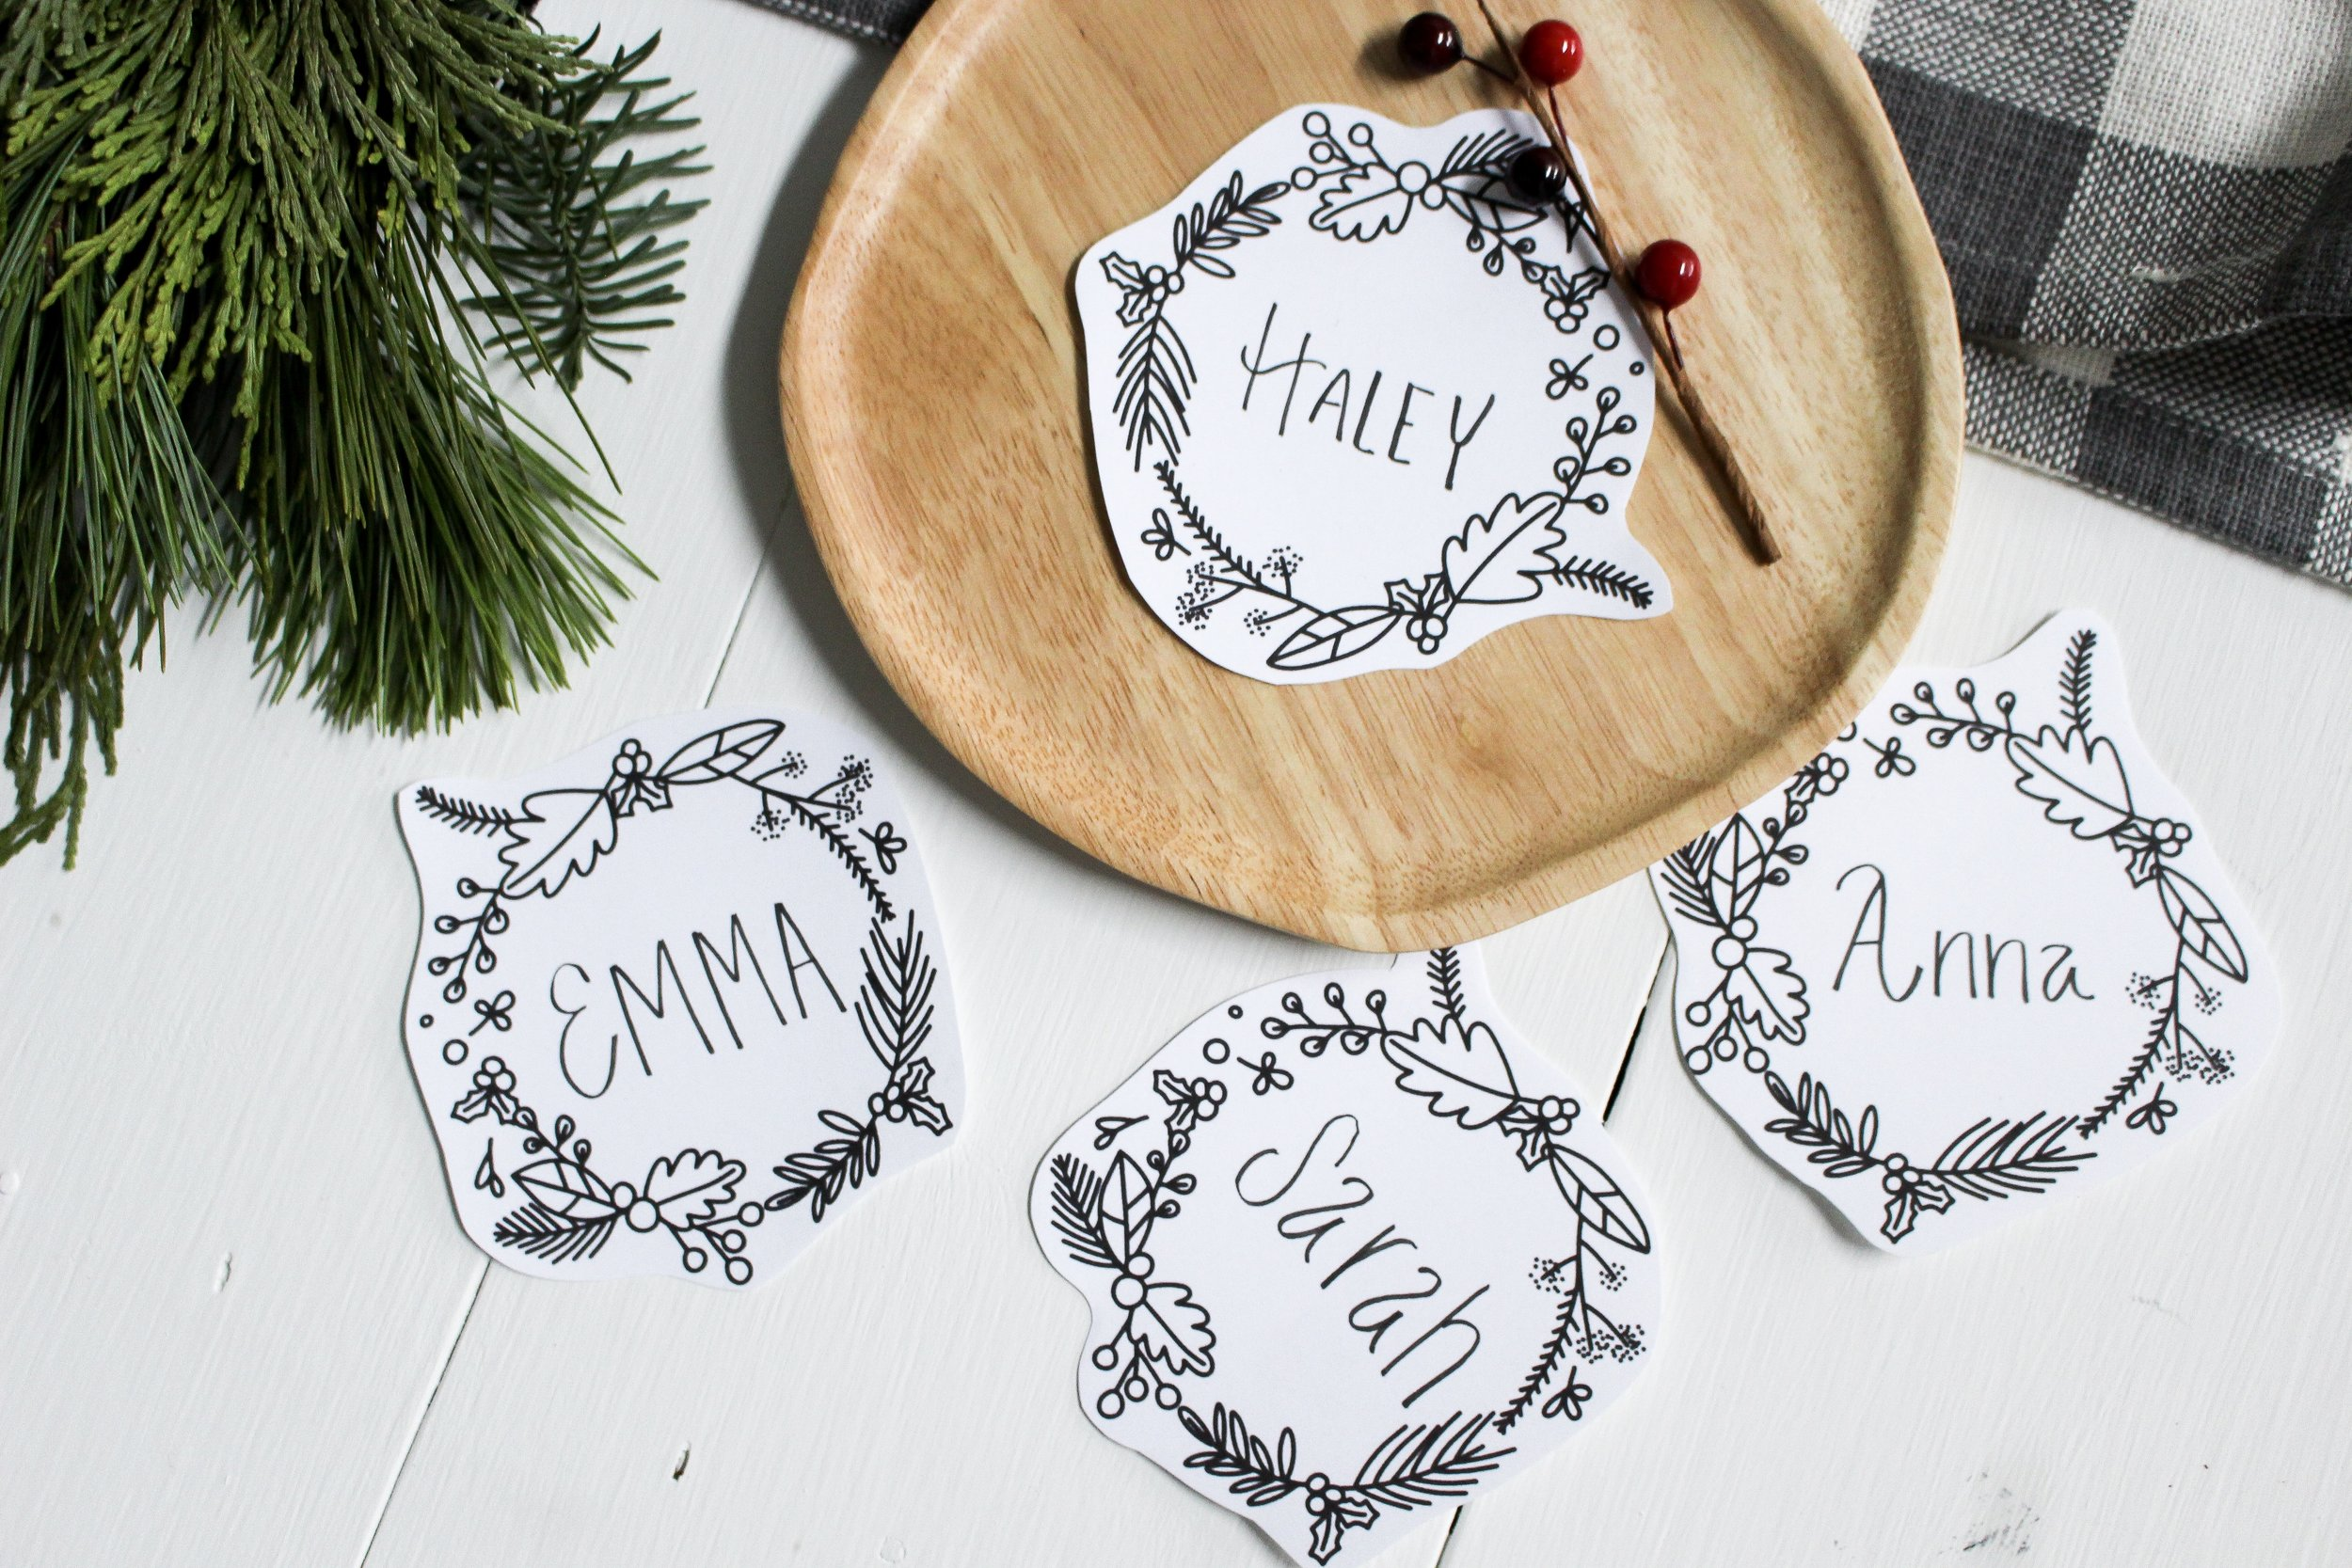 The Paper + Craft Pantry Blog: After being cut out we lettered and are using them as place cards!